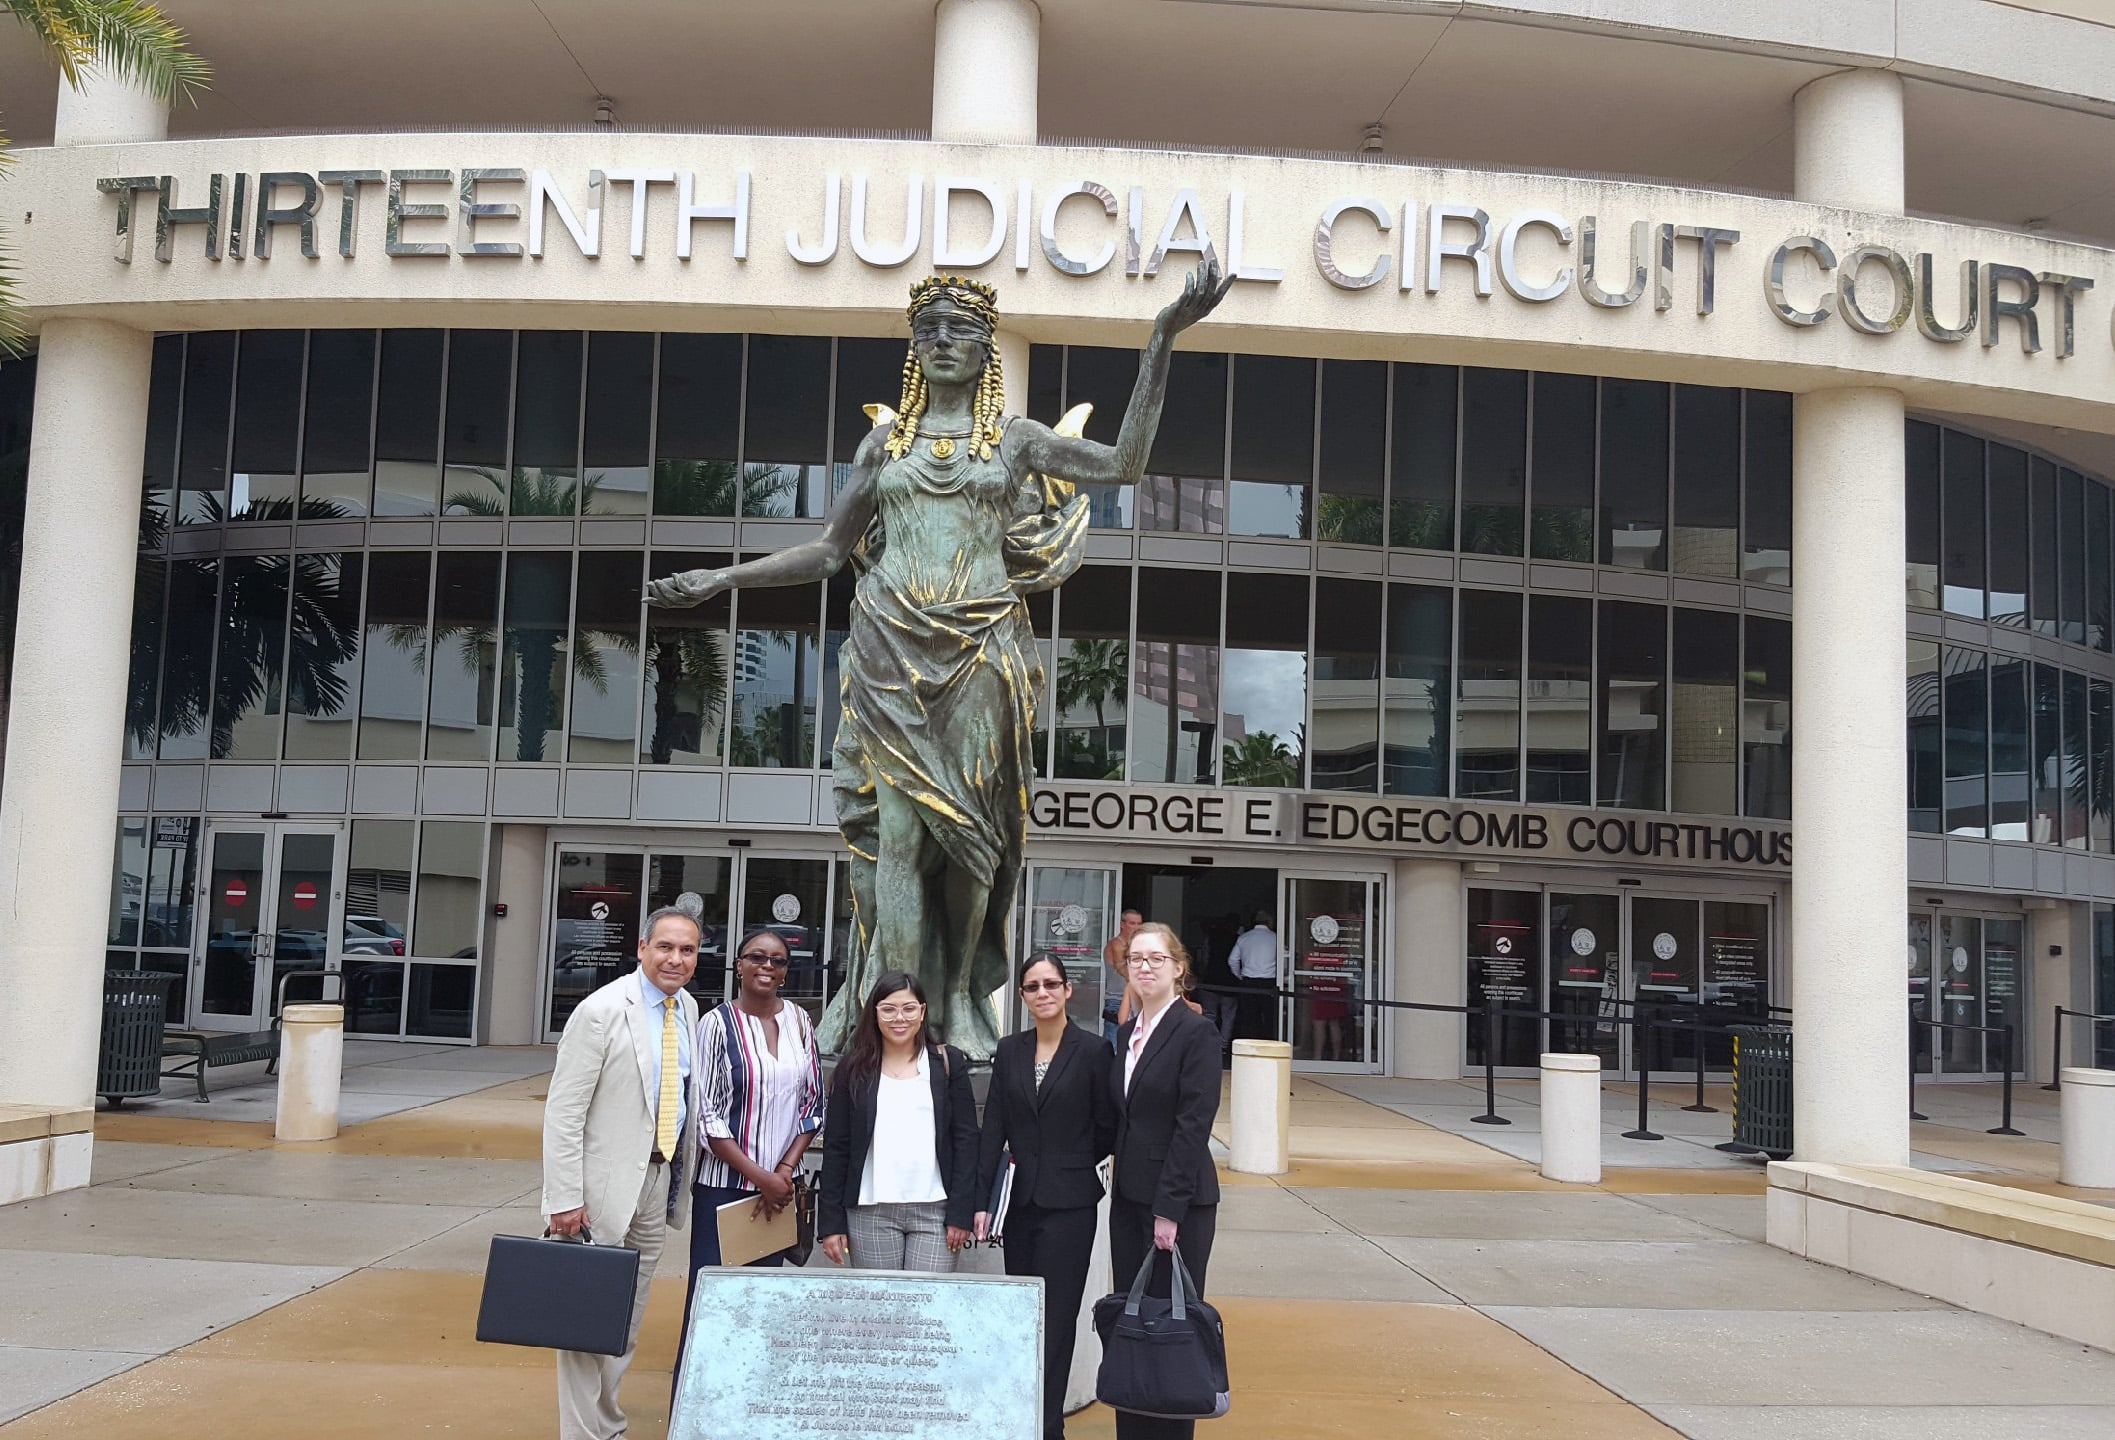 Murder Trial Observation Provides Tampa Legal Studies Students First-Hand Insight